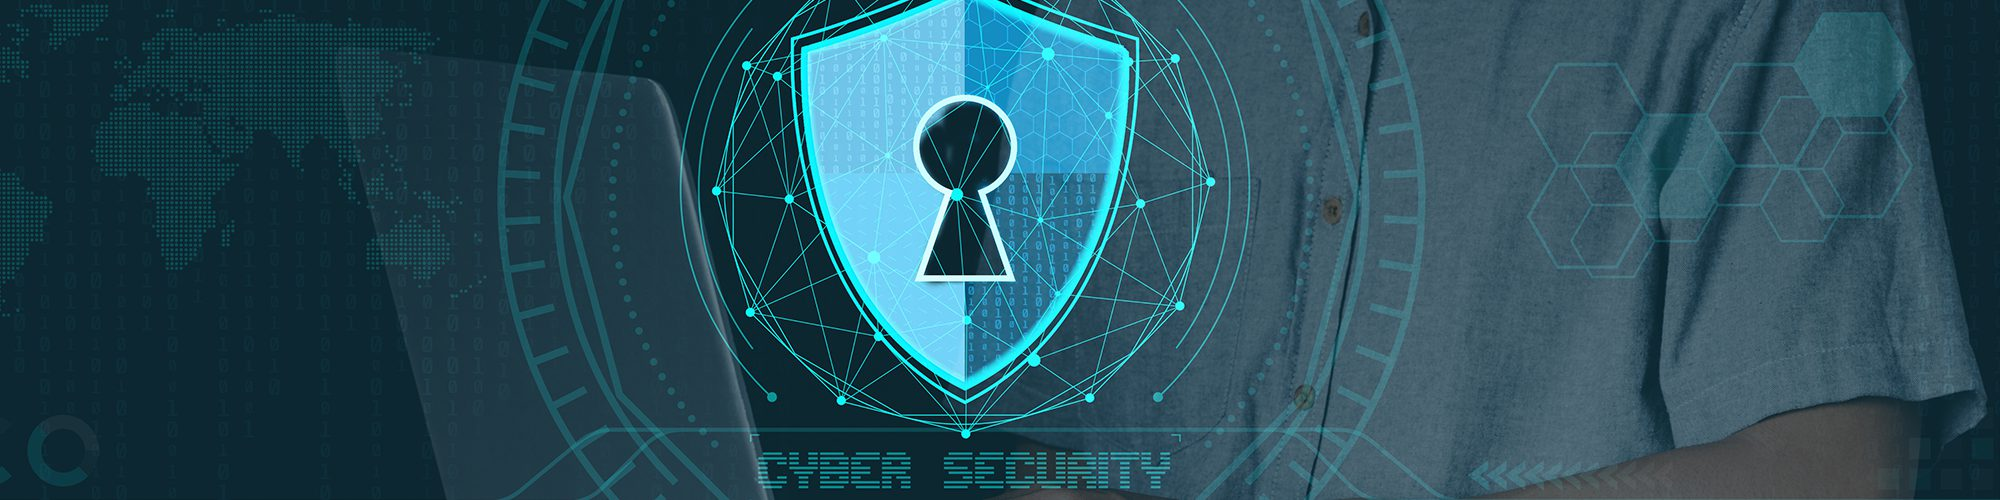 Building a proactive approach to cyber security